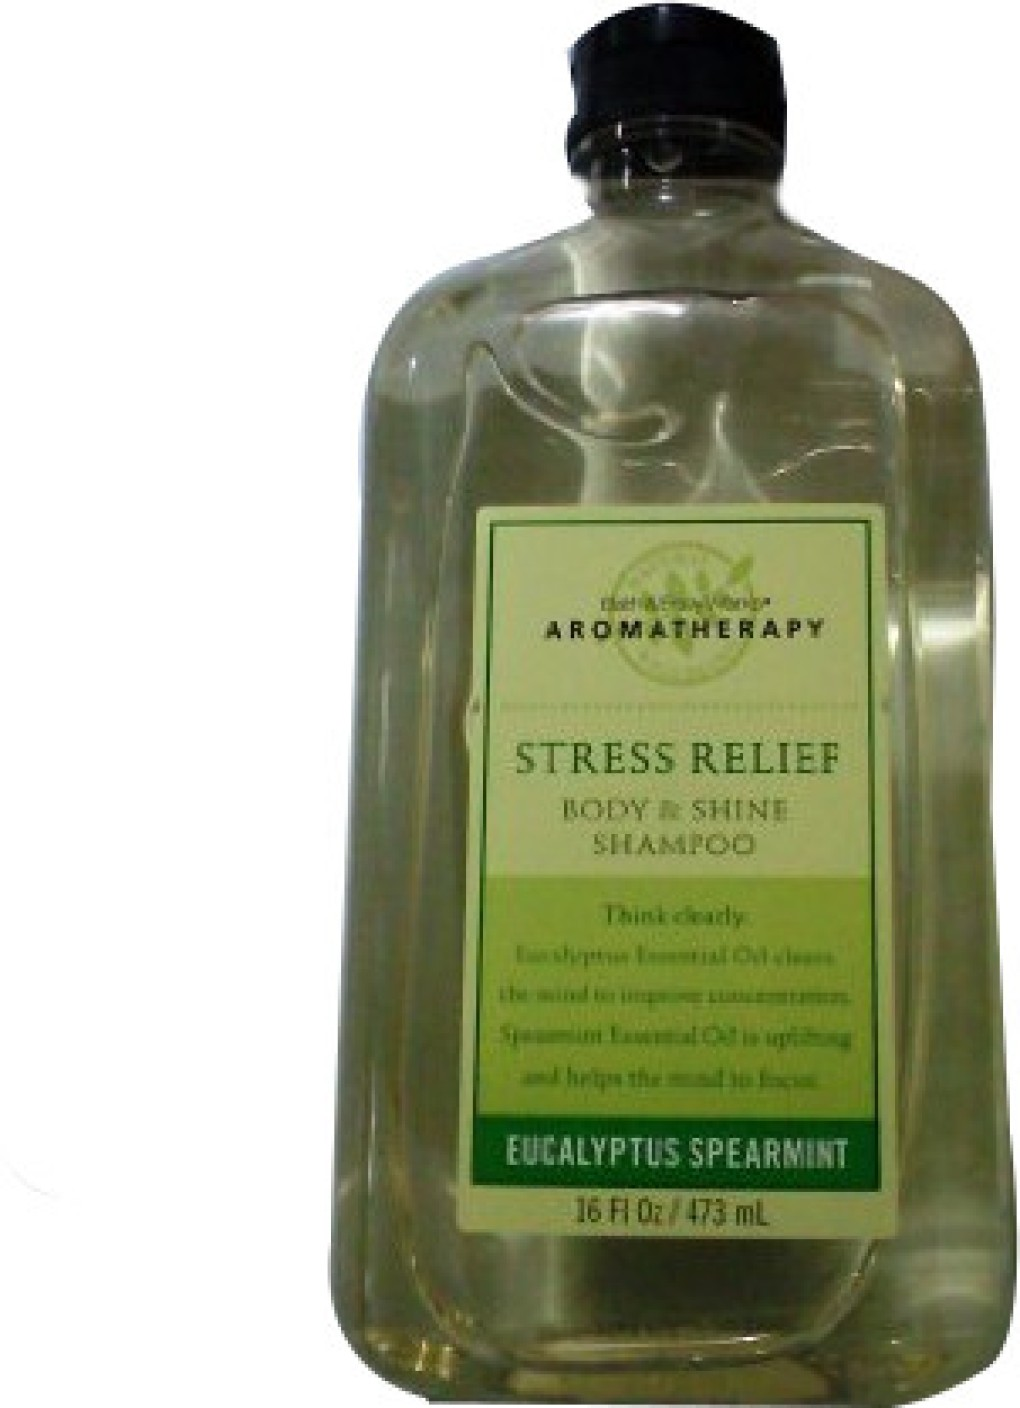 Highlights for Bath & Body Works. At the end of a long day, a relaxing bubble bath, a few scented candles and a luxurious lotion can do wonders.